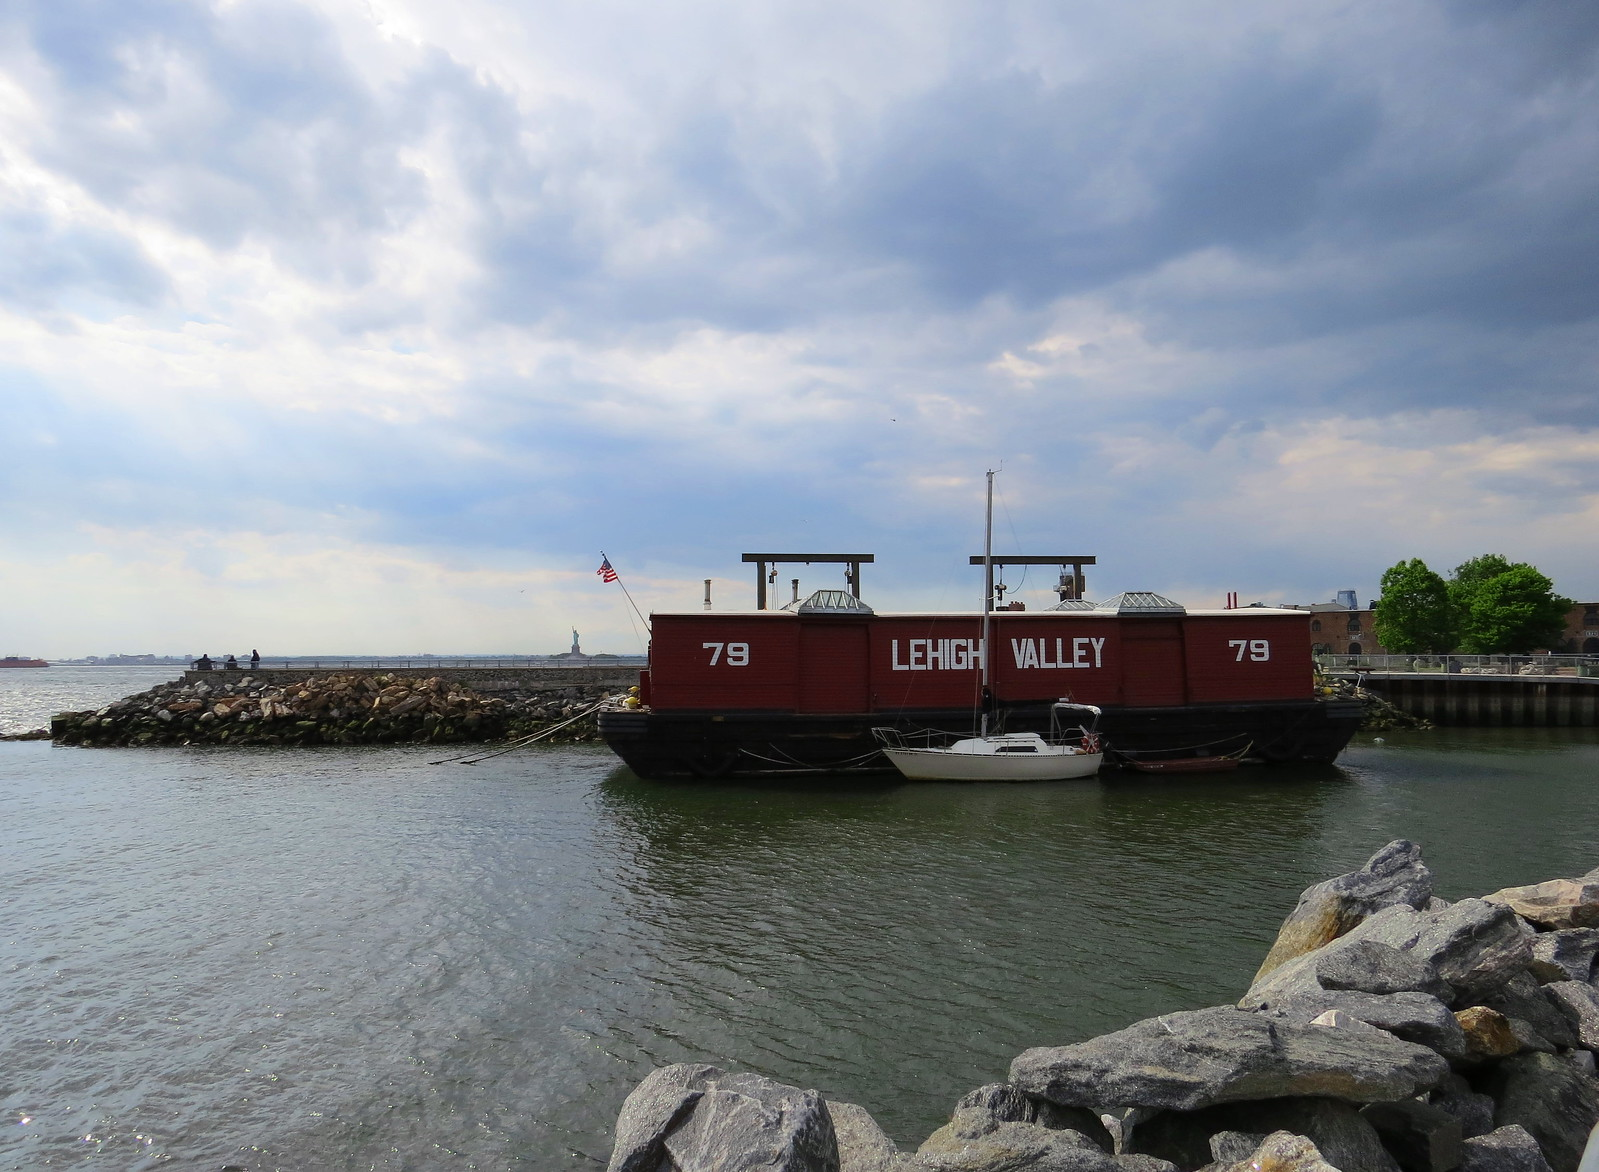 Lehigh Valley Barge, Red Hook, Brooklyn, NY